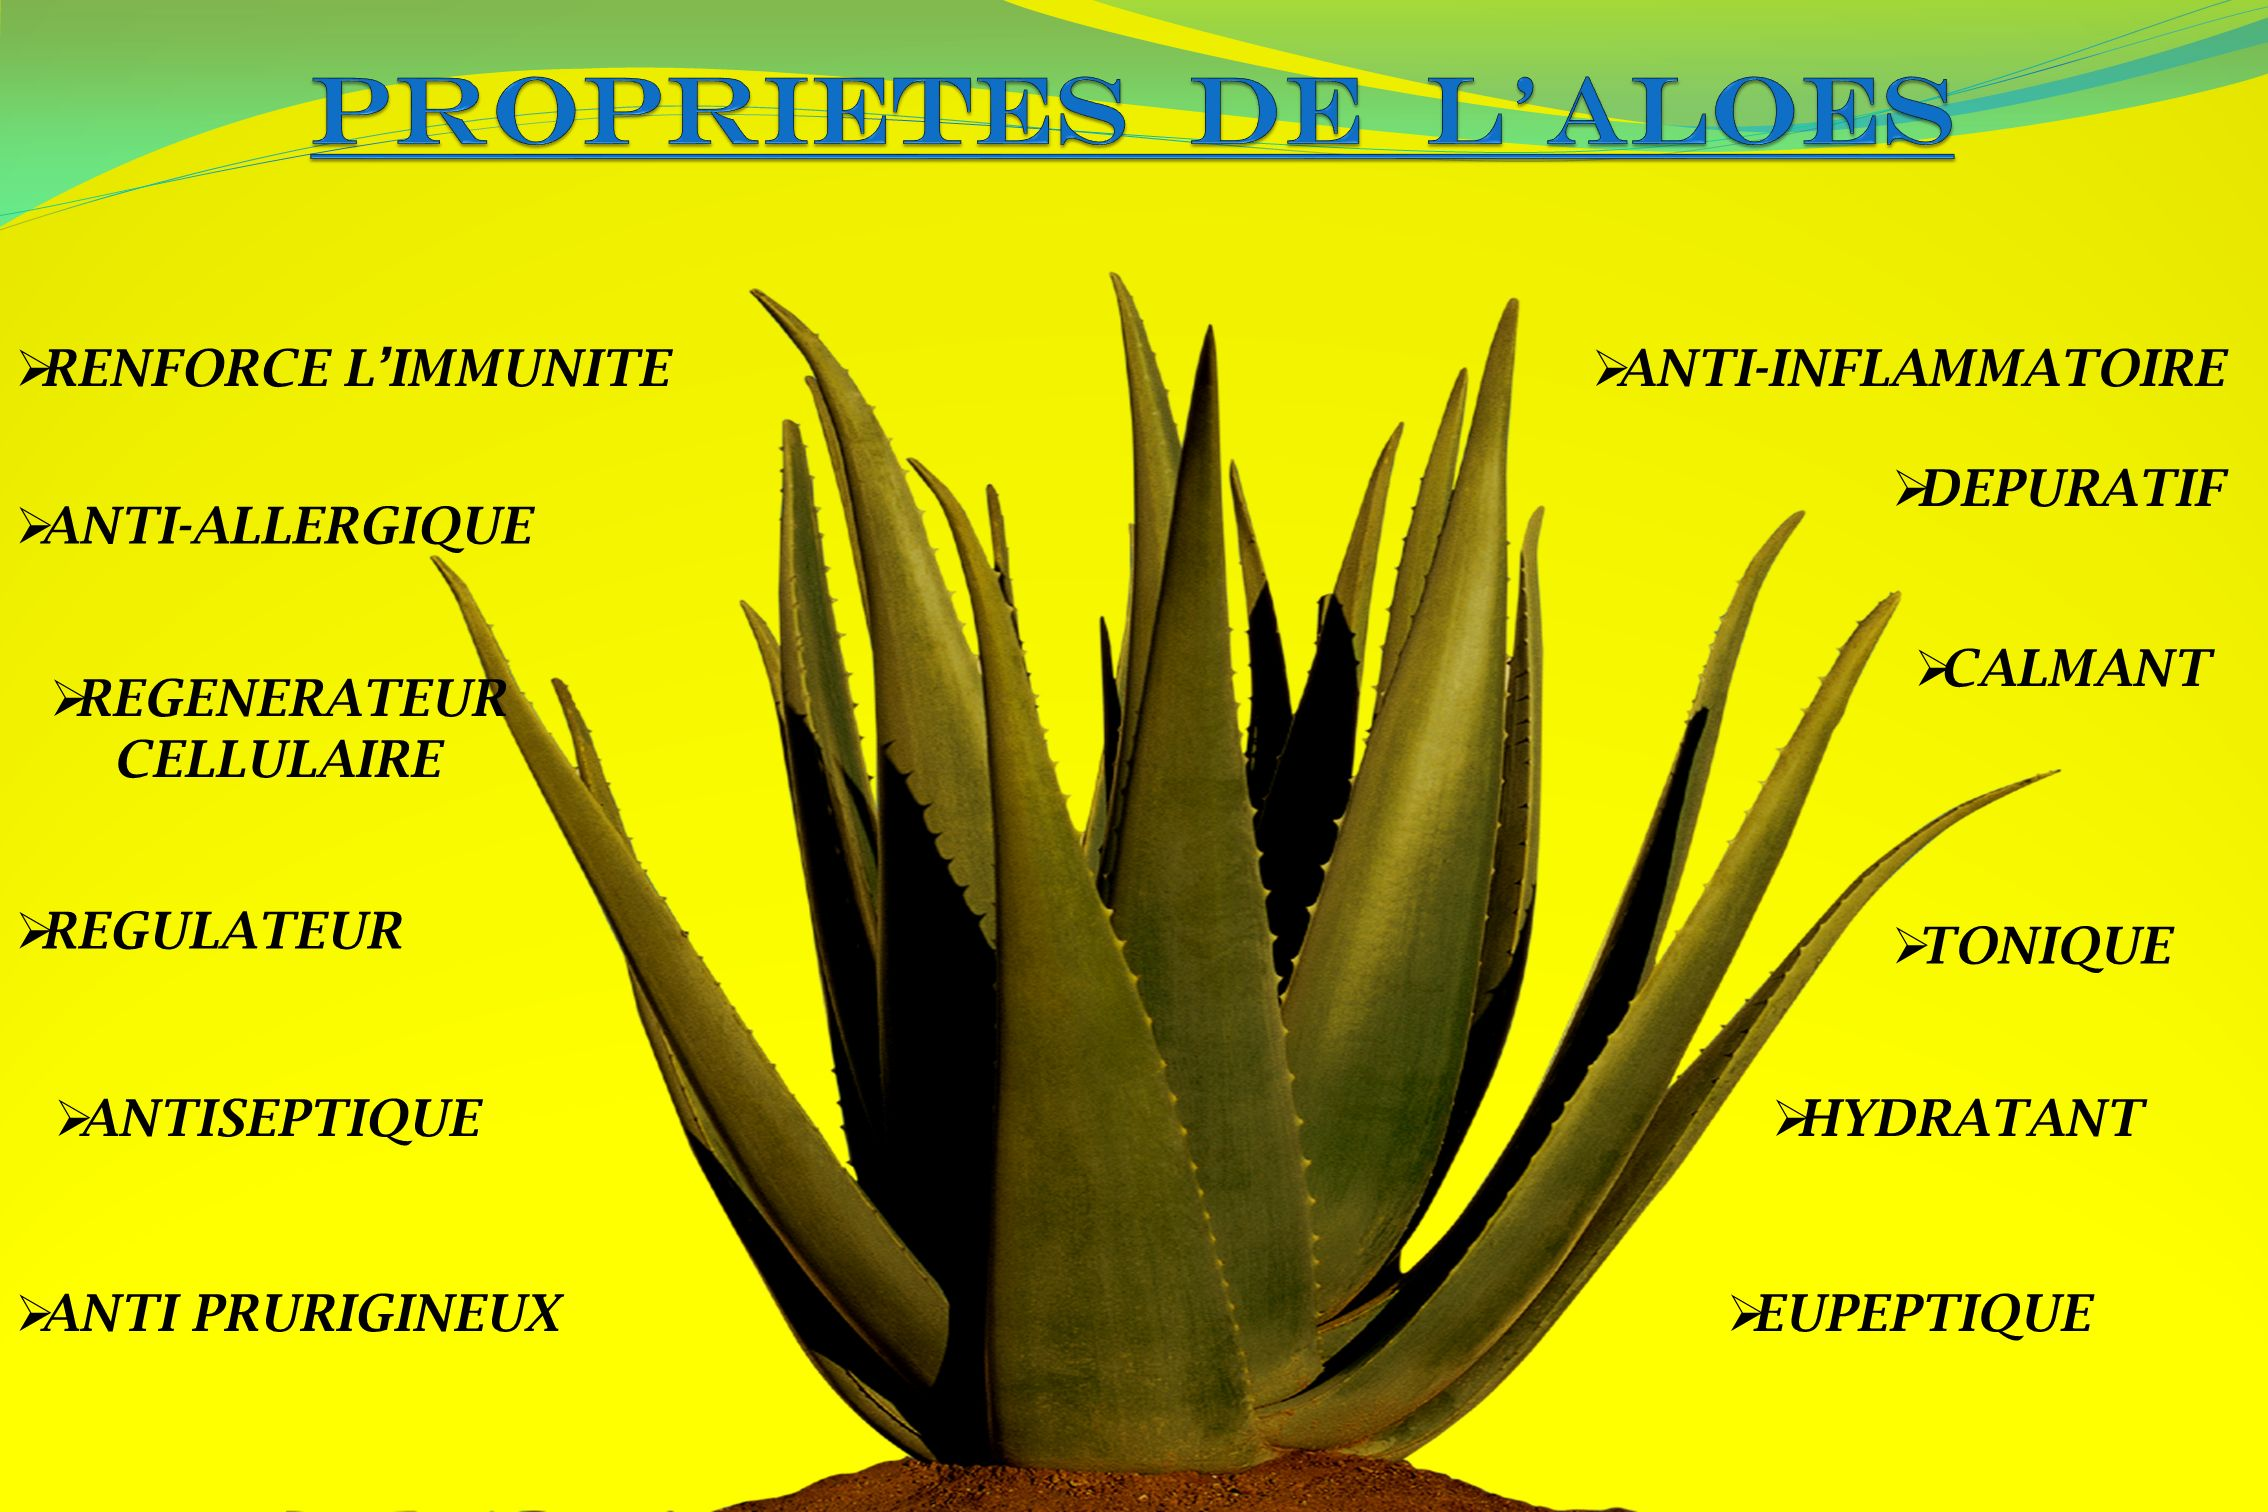 PROPRIETES DE L'ALOES RENFORCE L'IMMUNITE ANTI-INFLAMMATOIRE DEPURATIF